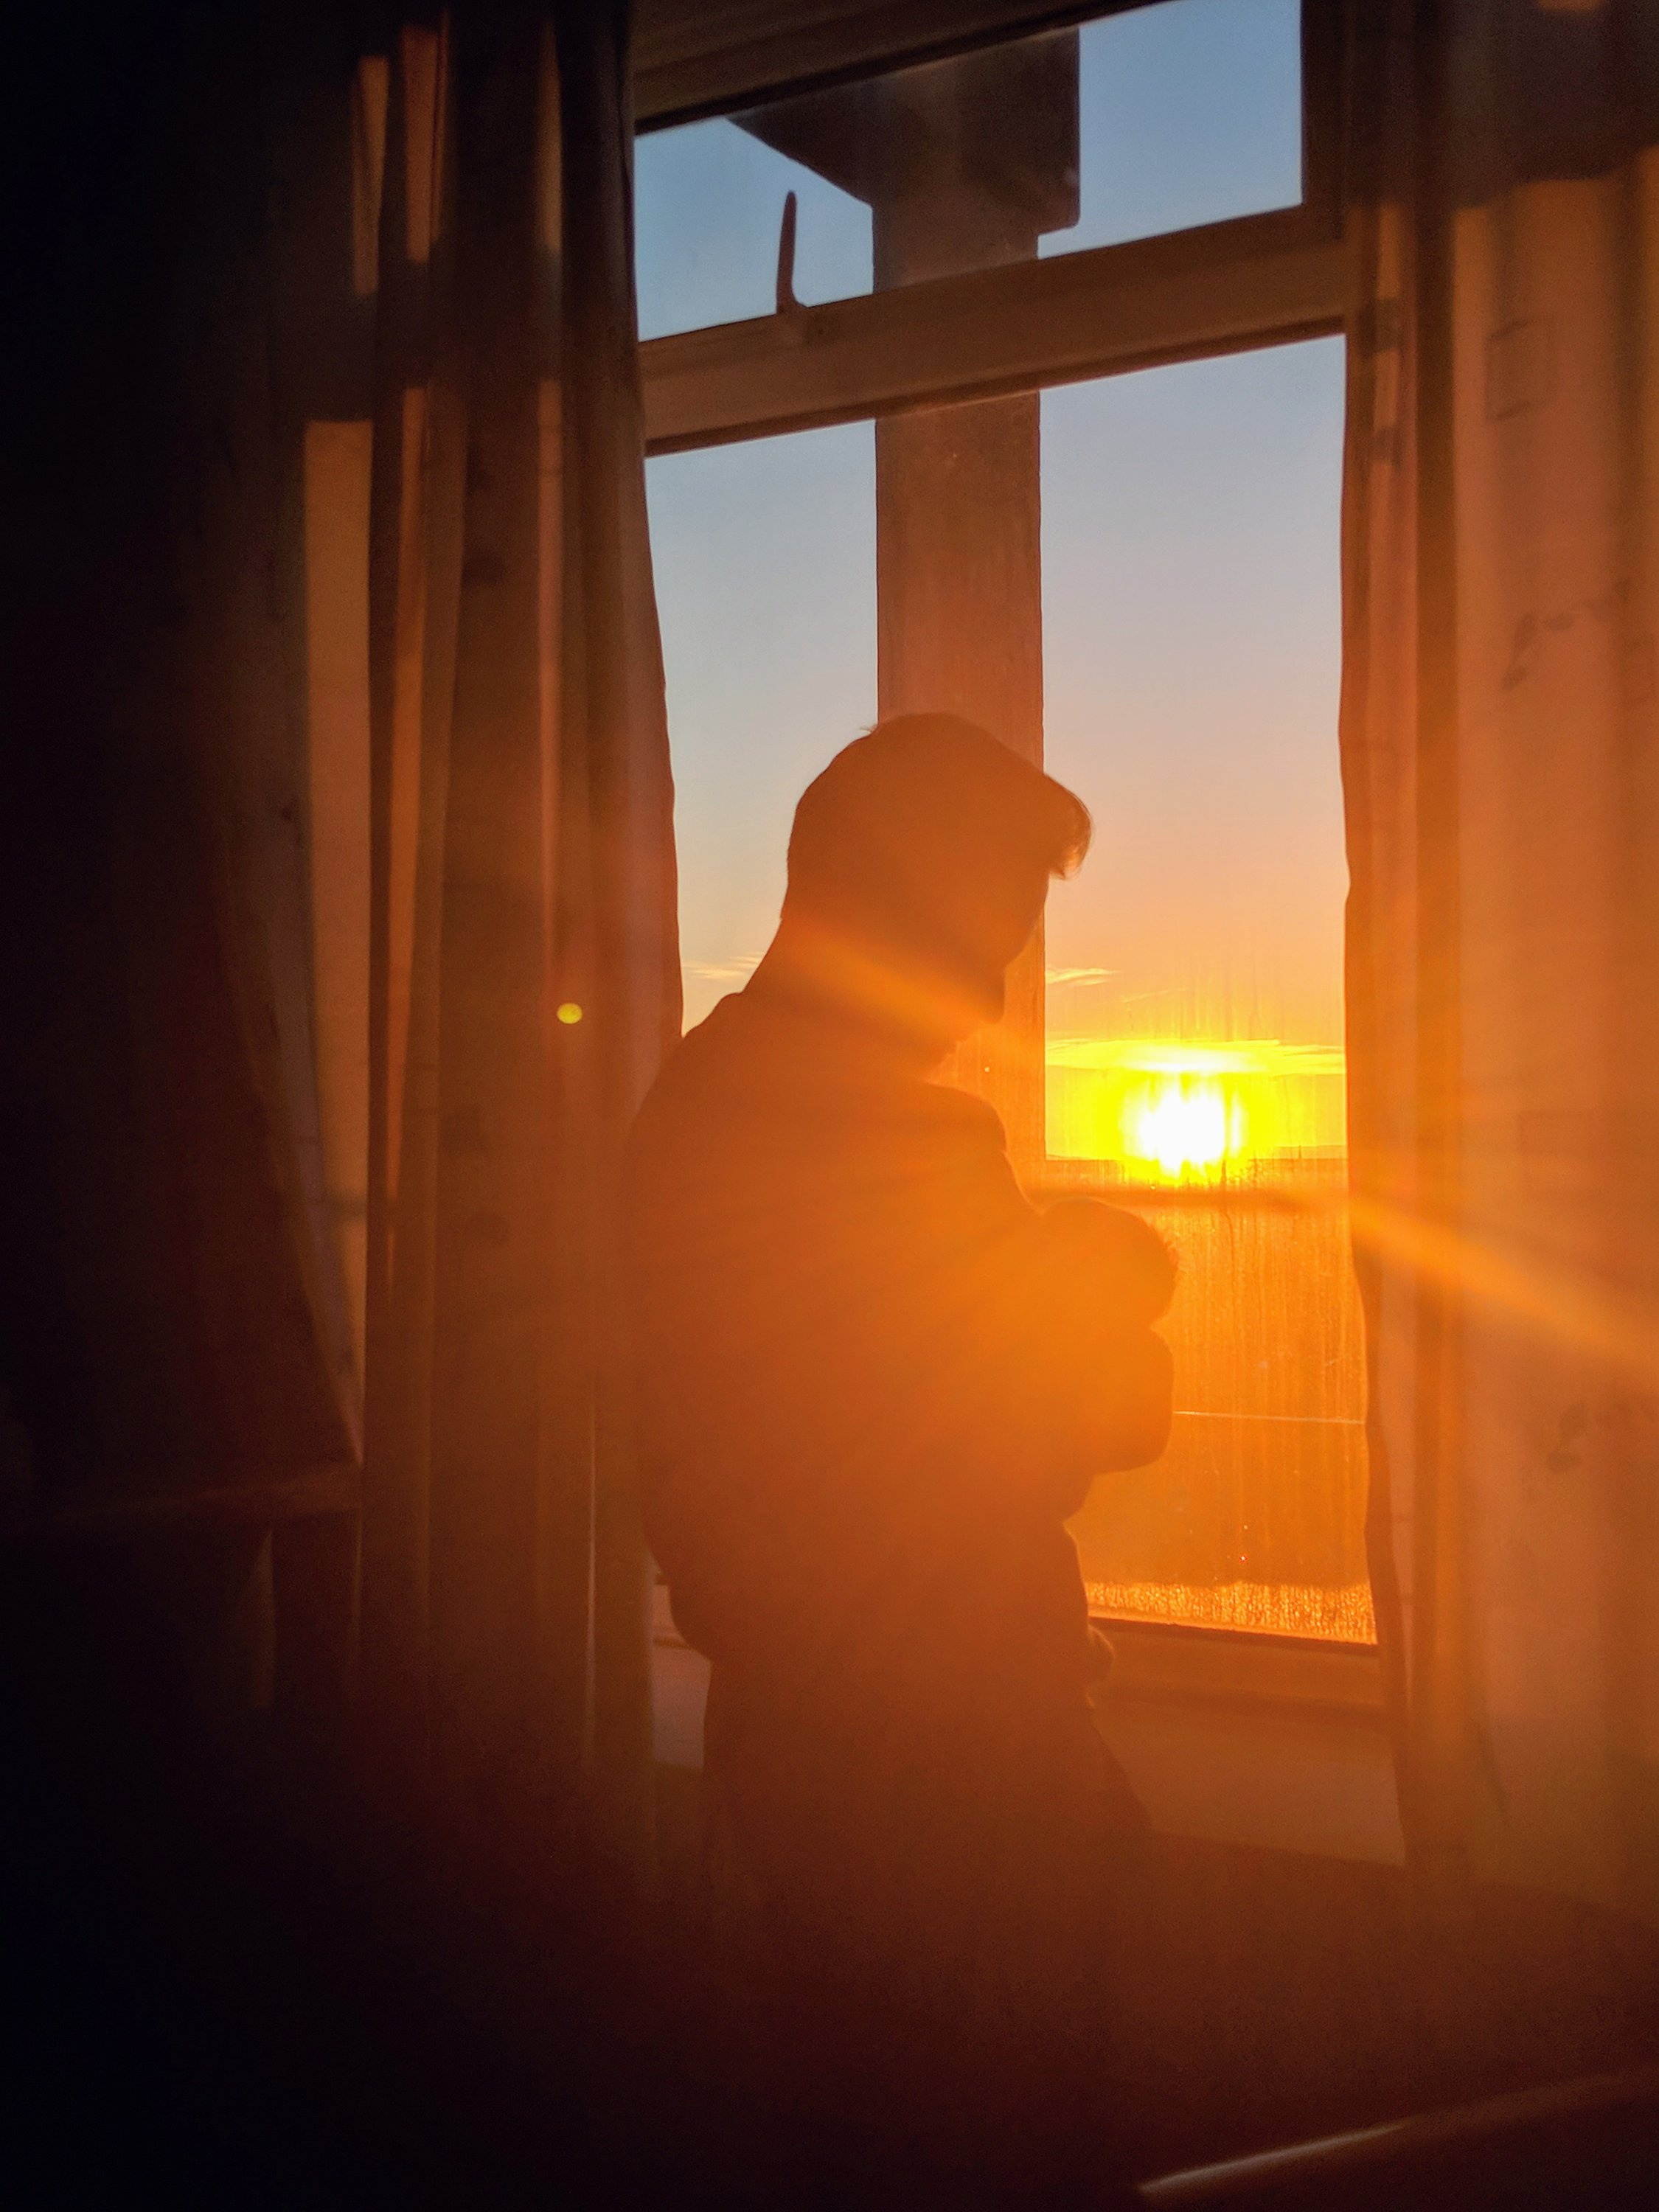 dad holding newborn baby looking at sunrise in darlington memorial hospital